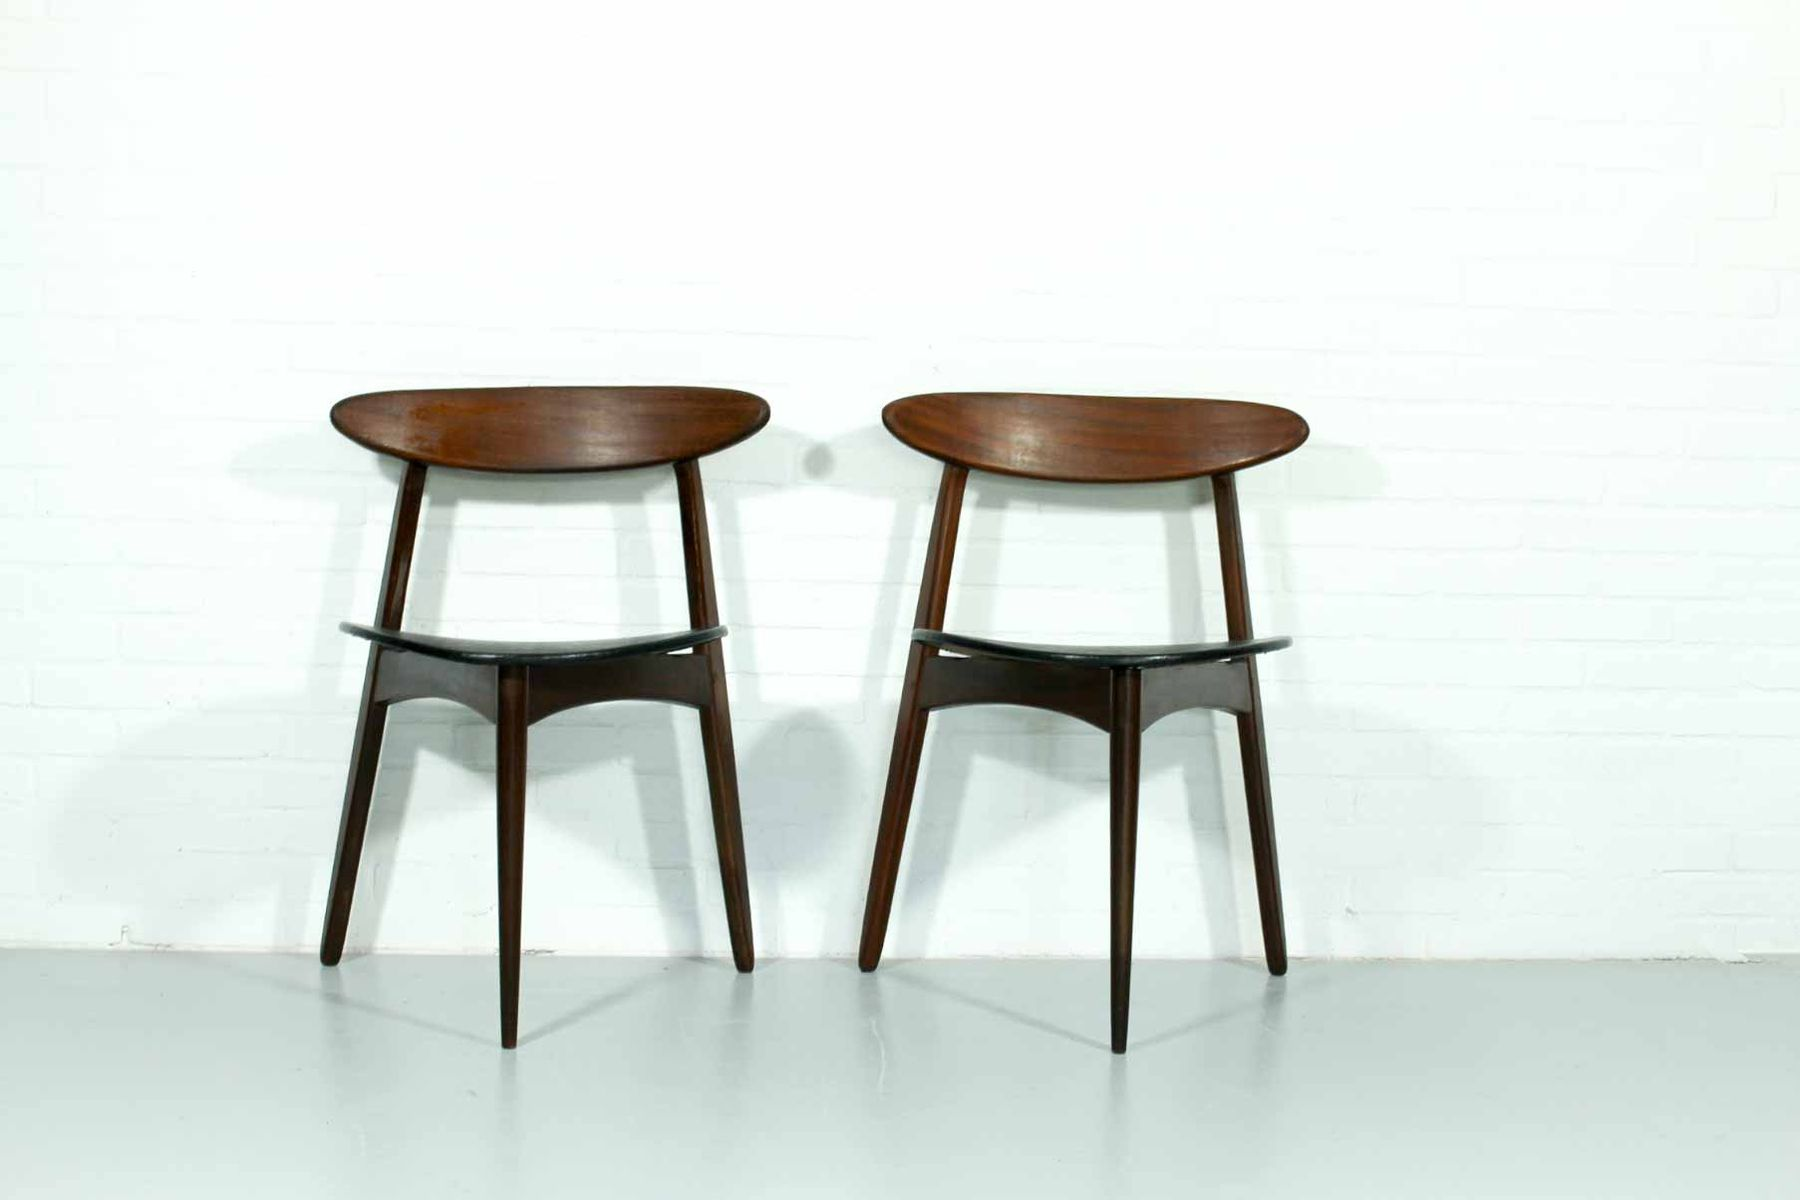 Mid Century Dining Chairs Mid Century Danish Dining Chairs Set Of 2 For Sale At Pamono